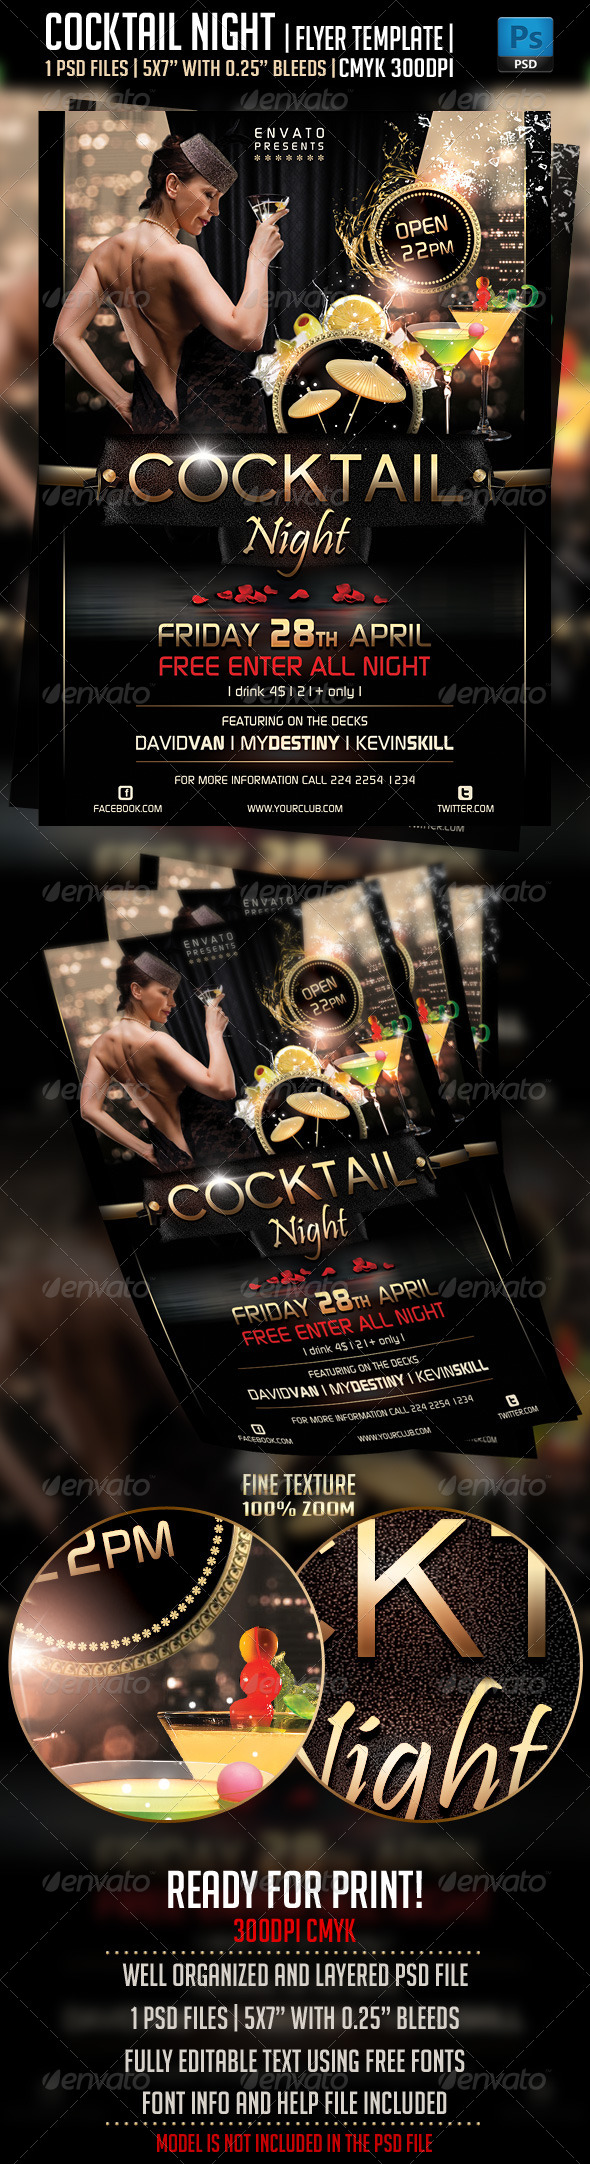 Cocktail Night Flyer Template - Clubs & Parties Events